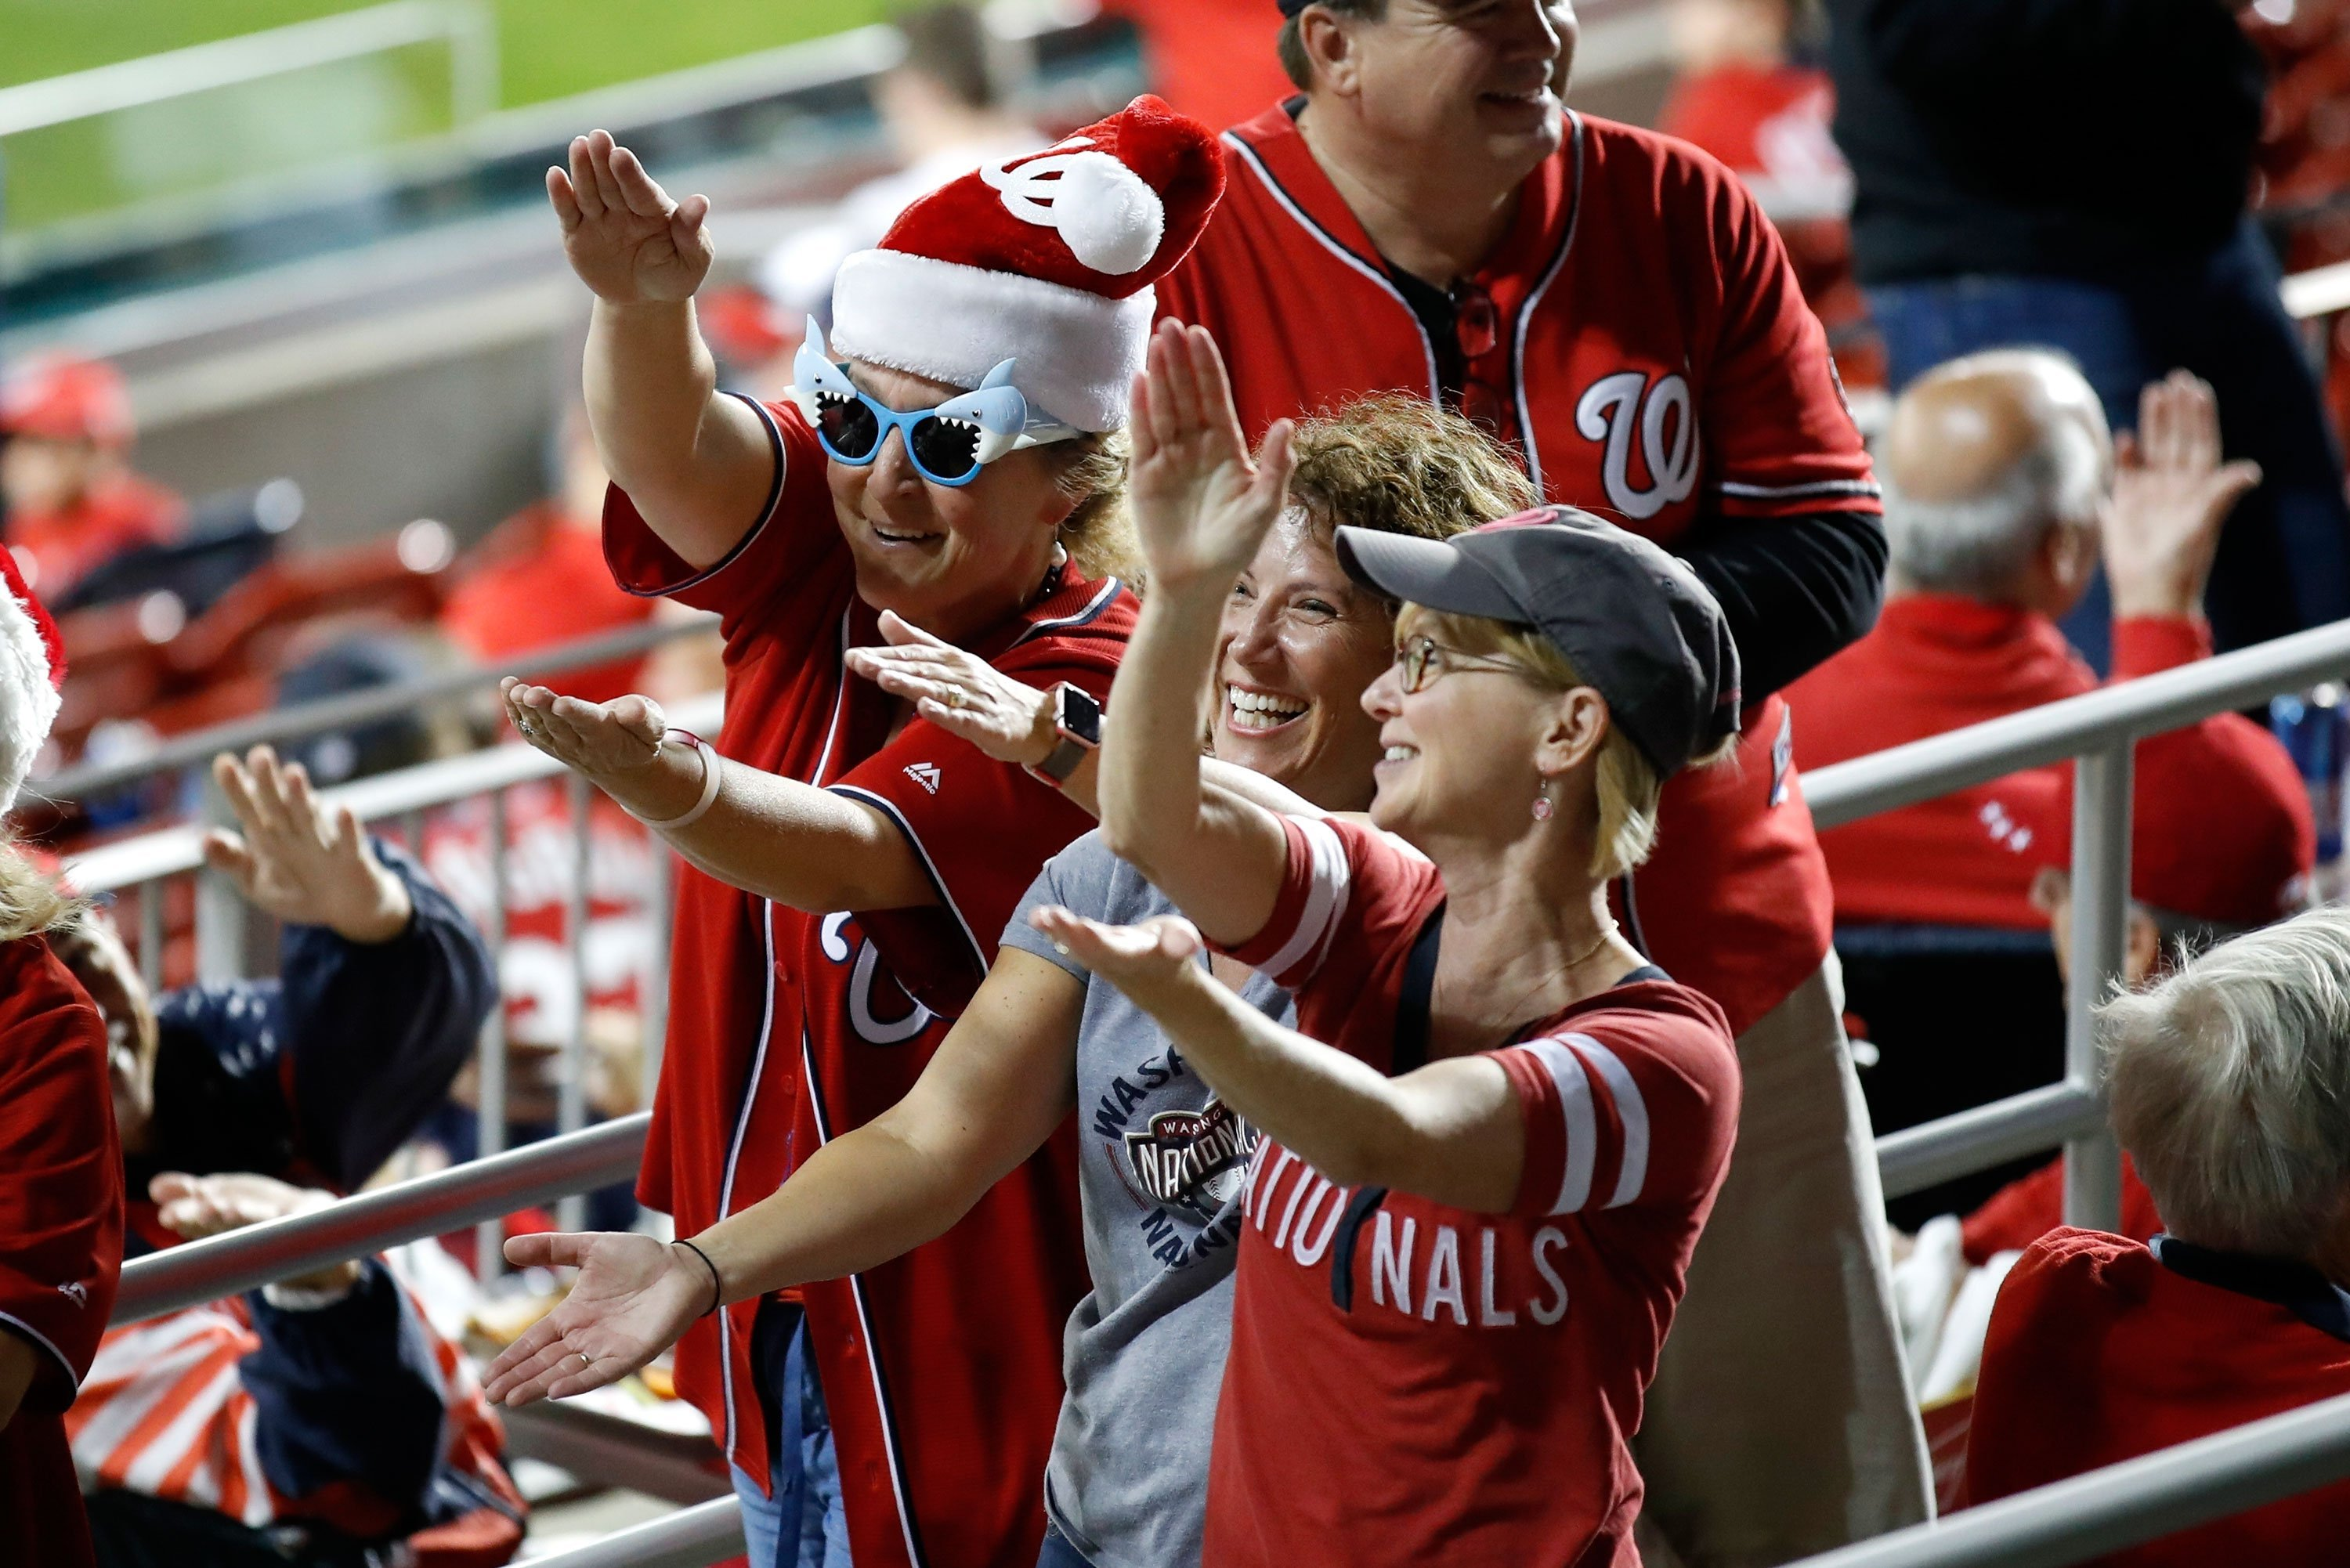 Can the Washington Nationals shock the heavily favored Houston Astros in the World Series?